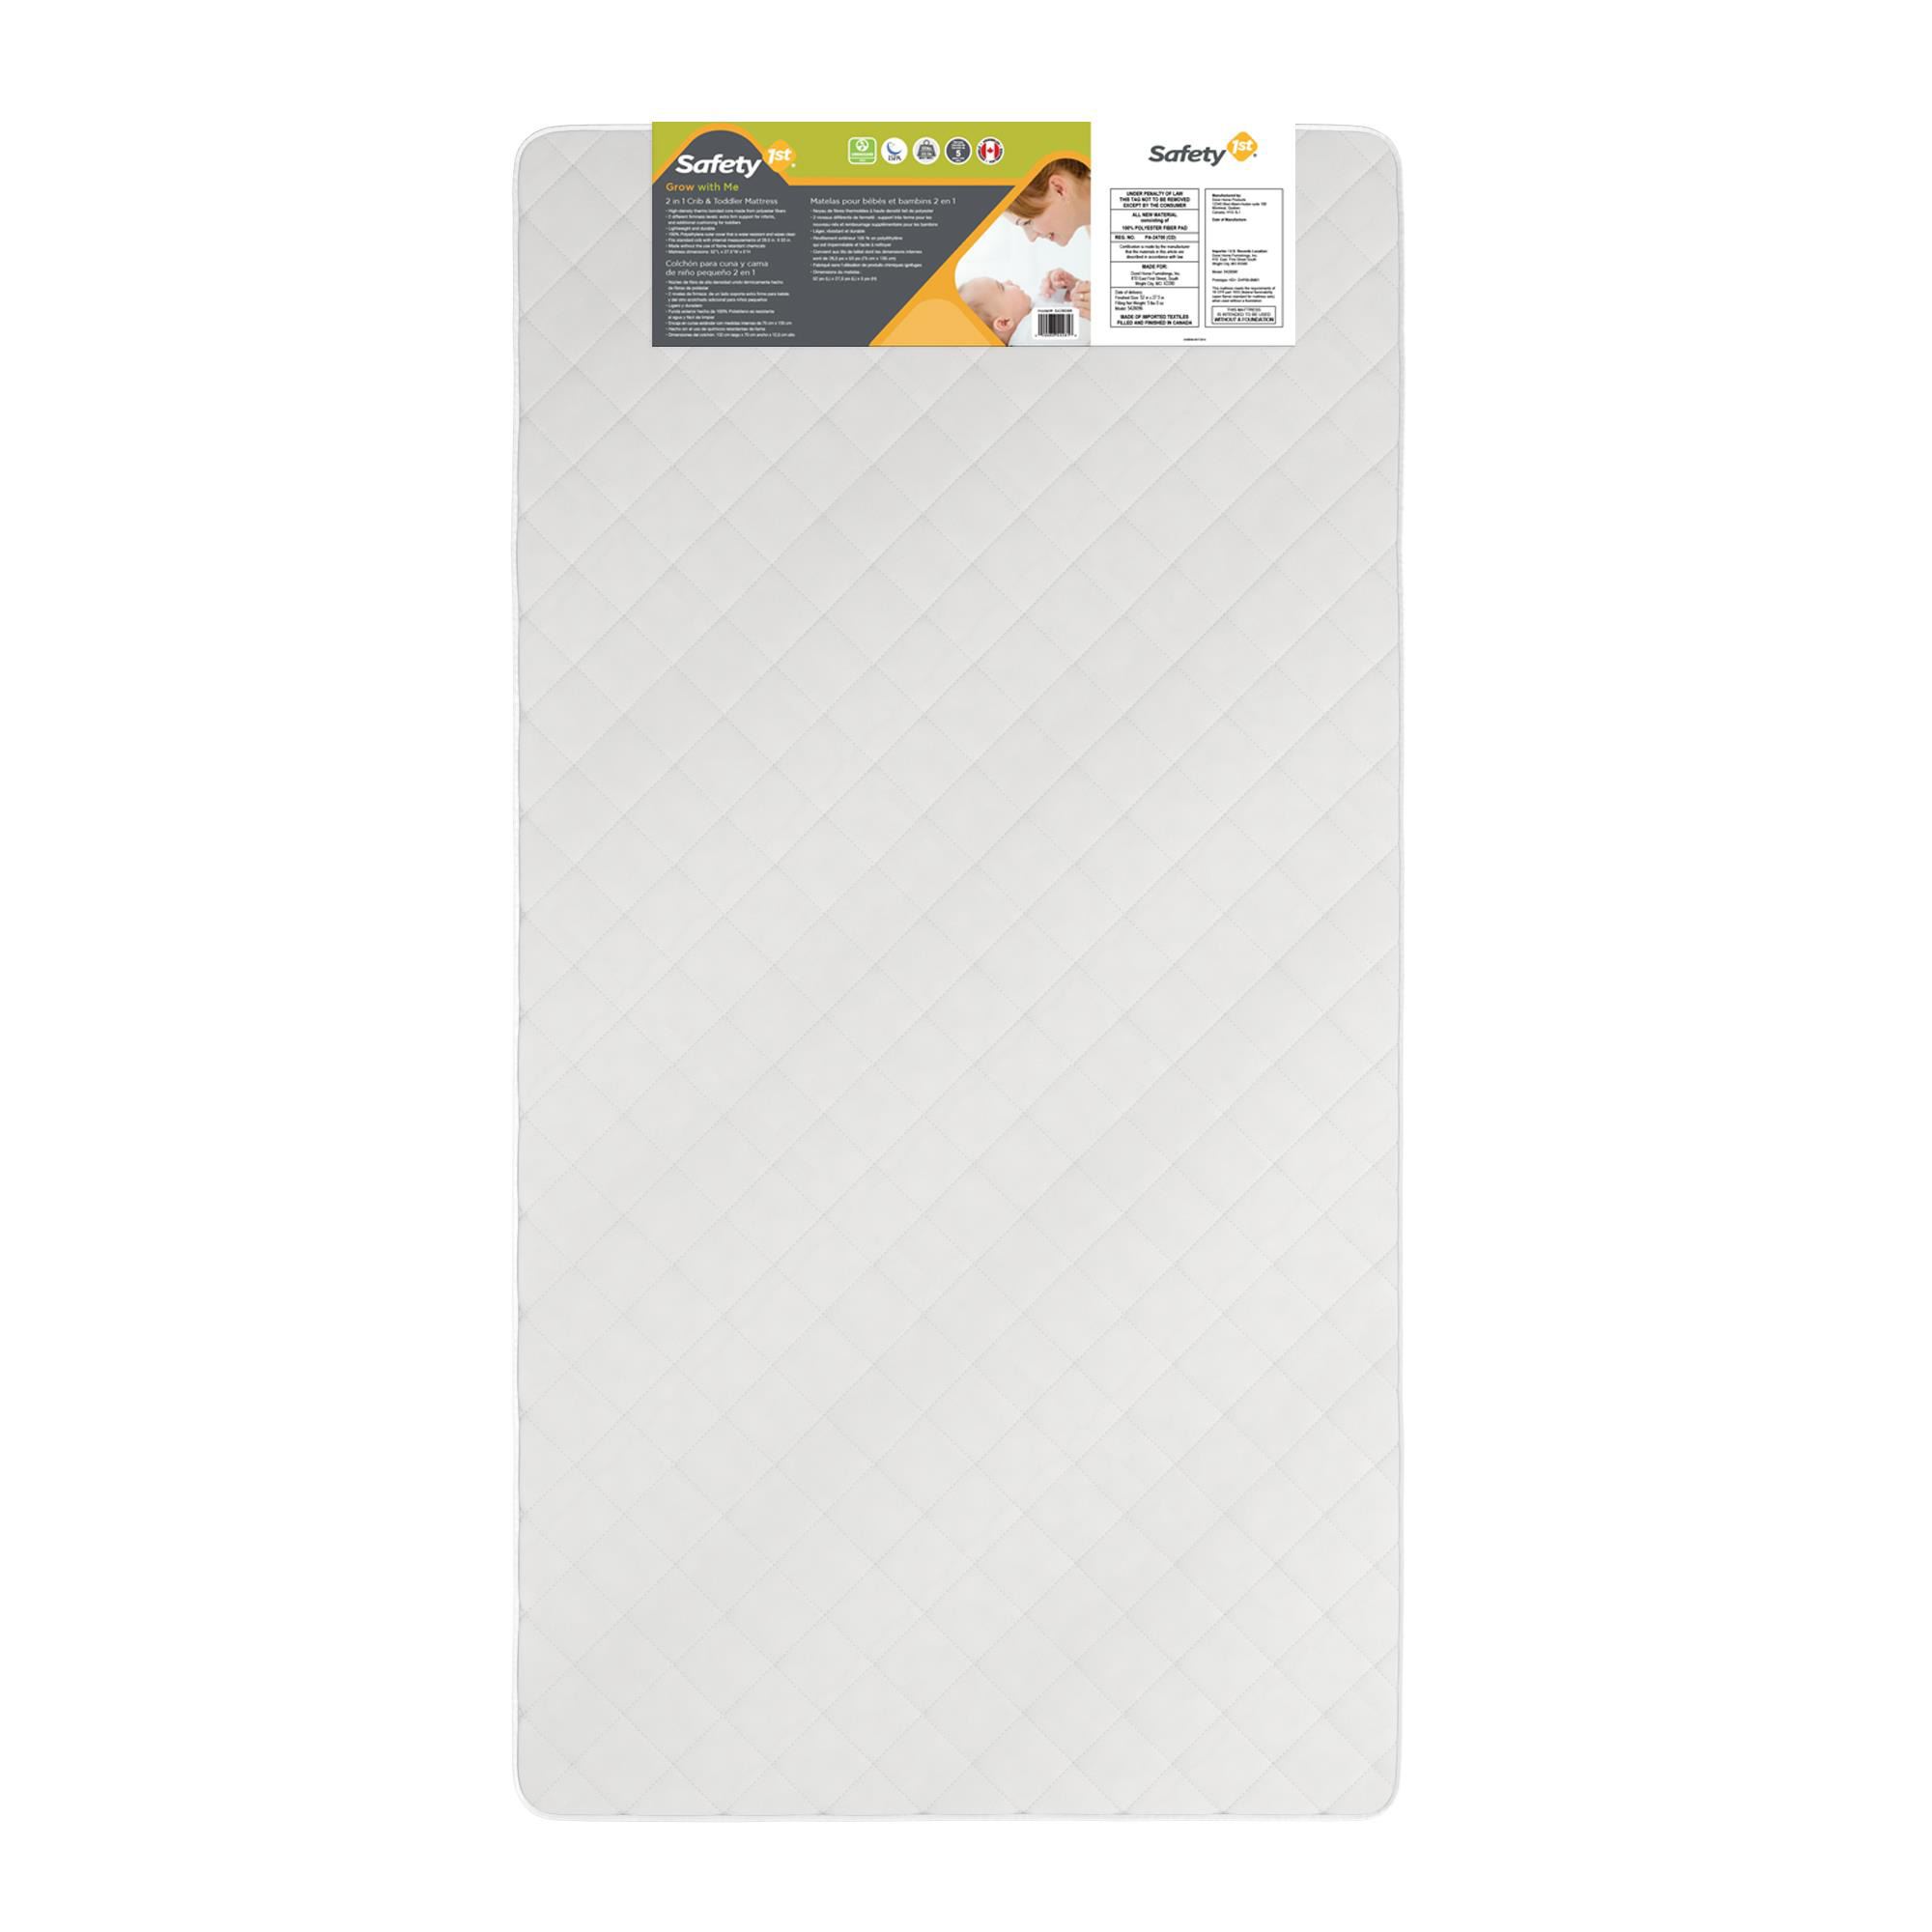 Safety 1st Grow with Me 2 in 1 Crib and Toddler Bed Mattress, White